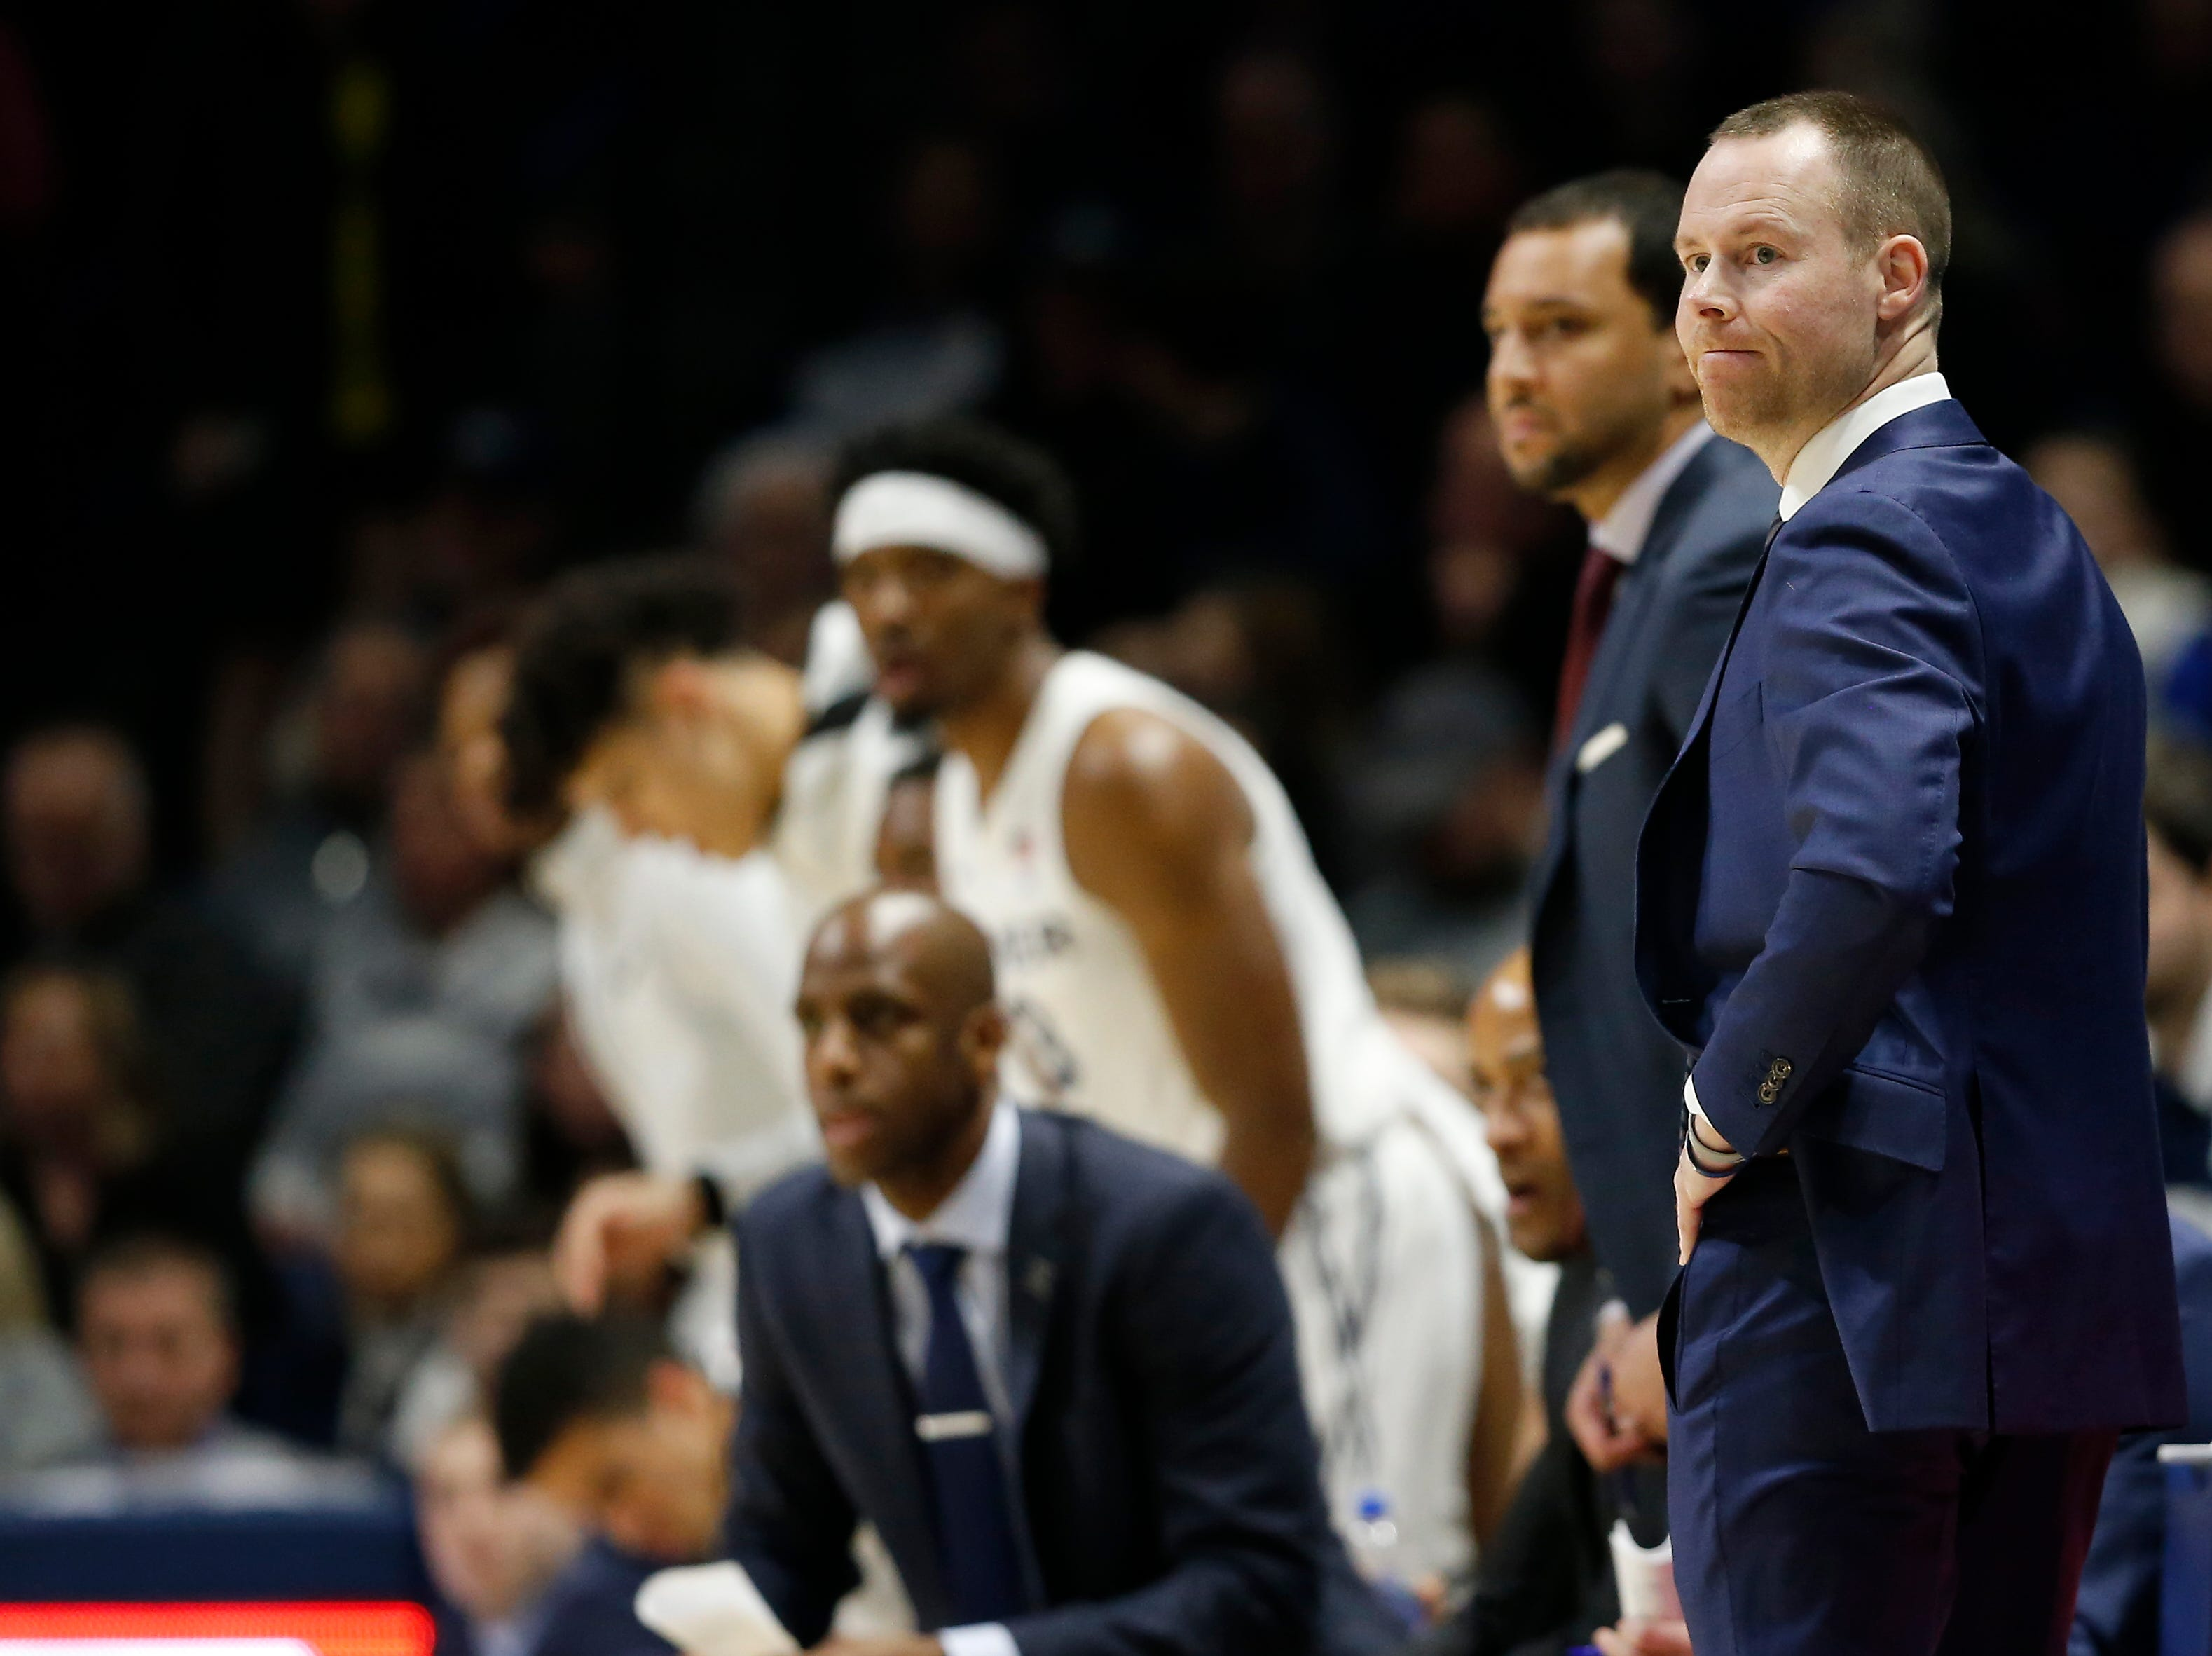 Xavier Musketeers head coach Travis Steele shakes his head in the first half of the NCAA Big East Conference game between the Xavier Musketeers and the DePaul Blue Demons at the Cintas Center in Cincinnati on Saturday, Feb. 9, 2019.